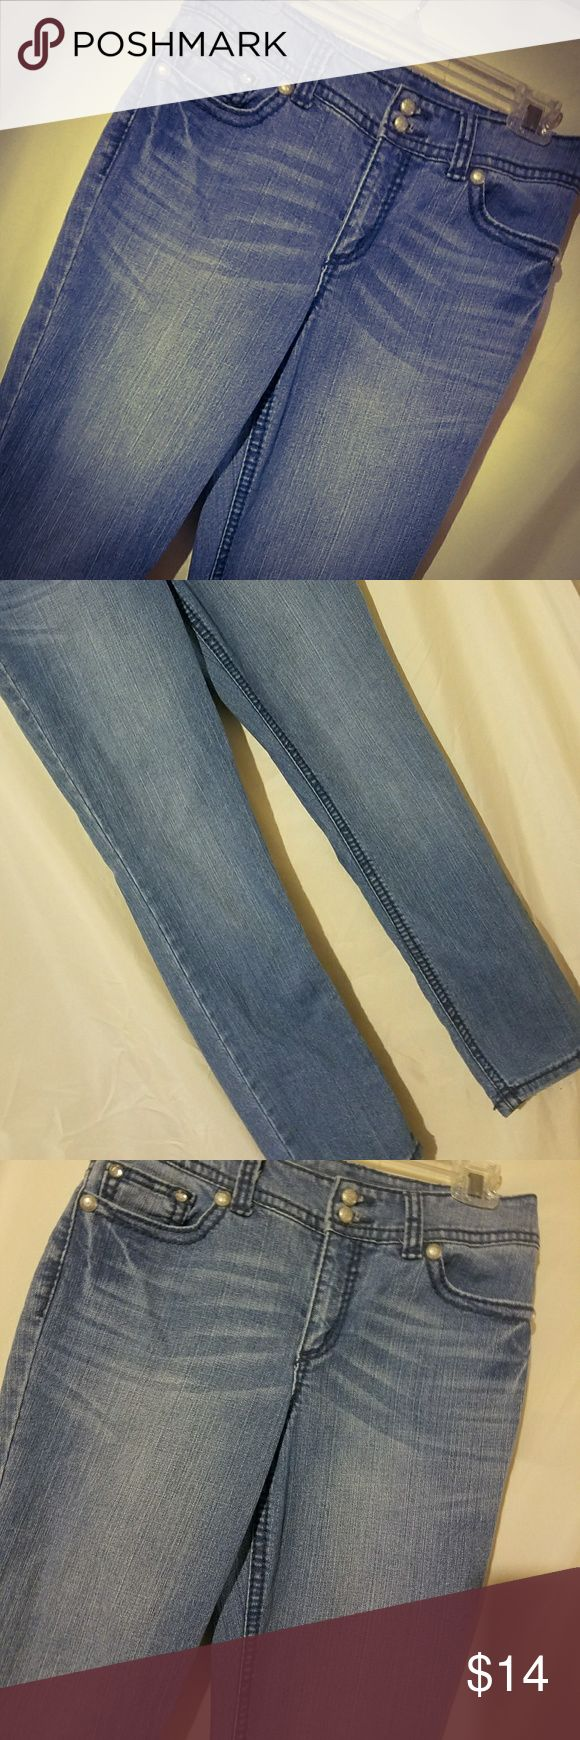 Code Blue Women's Jeans Sz 6/27 Code Blue Women's Blue Jeans 6/27. Has embroidered angel wings with rhinestones on back pockets. Code Blue Jeans Straight Leg